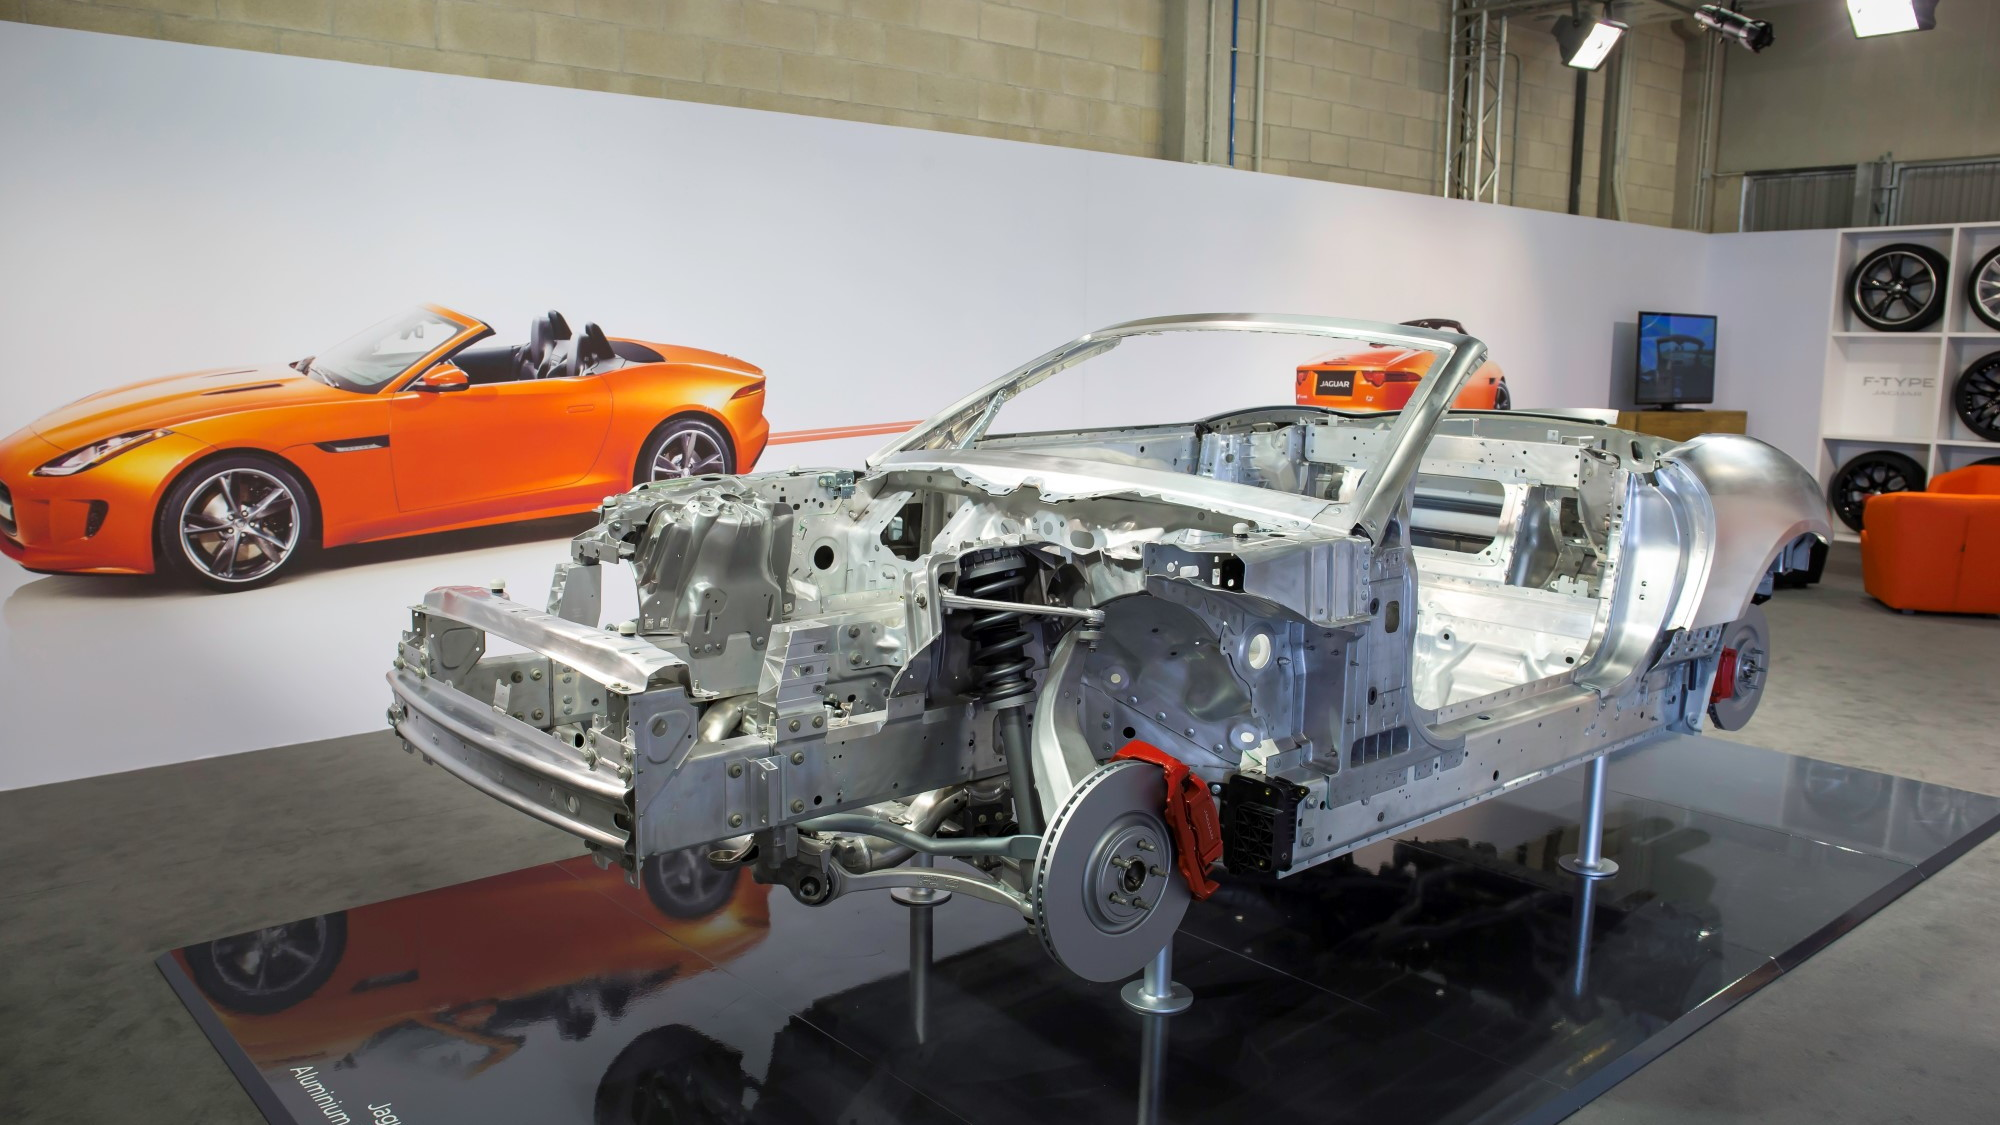 2014 Jaguar F-Type engineering displays